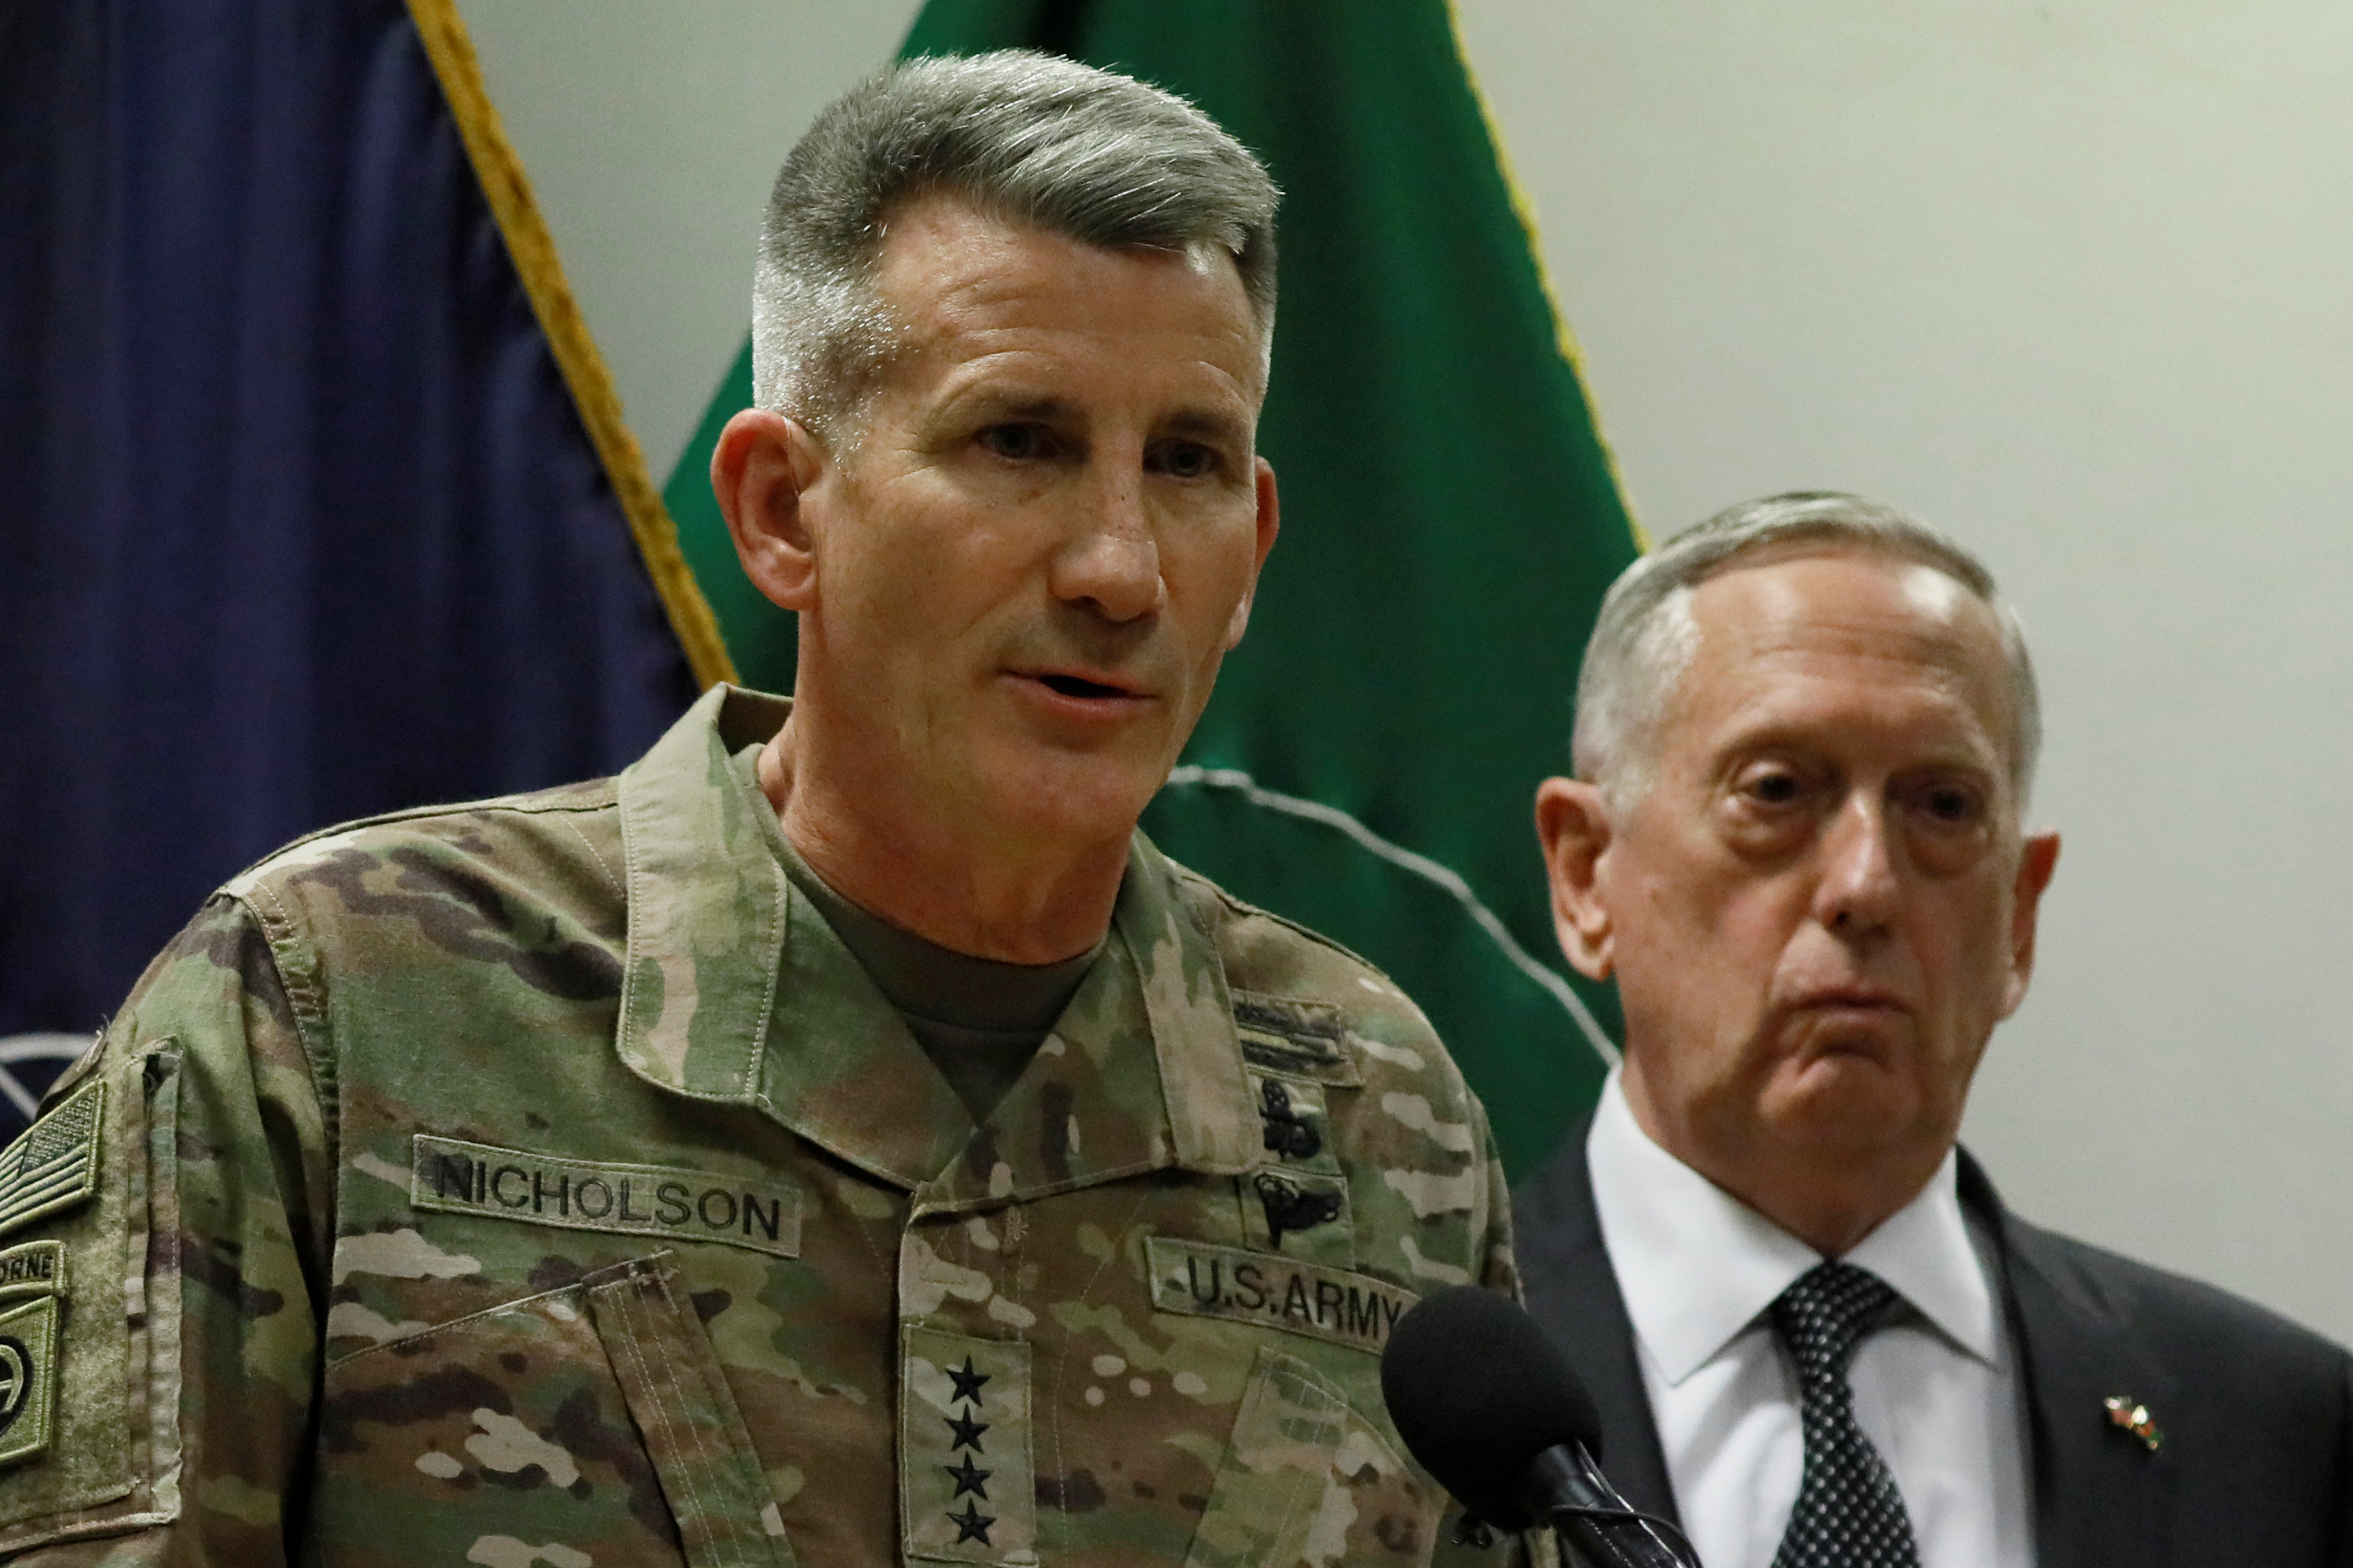 U.S. Army General John Nicholson (L), commander of U.S. Forces Afghanistan, and U.S. Defense Secretary James Mattis (R) hold a news conference at Resolute Support headquarters in Kabul, Afghanistan